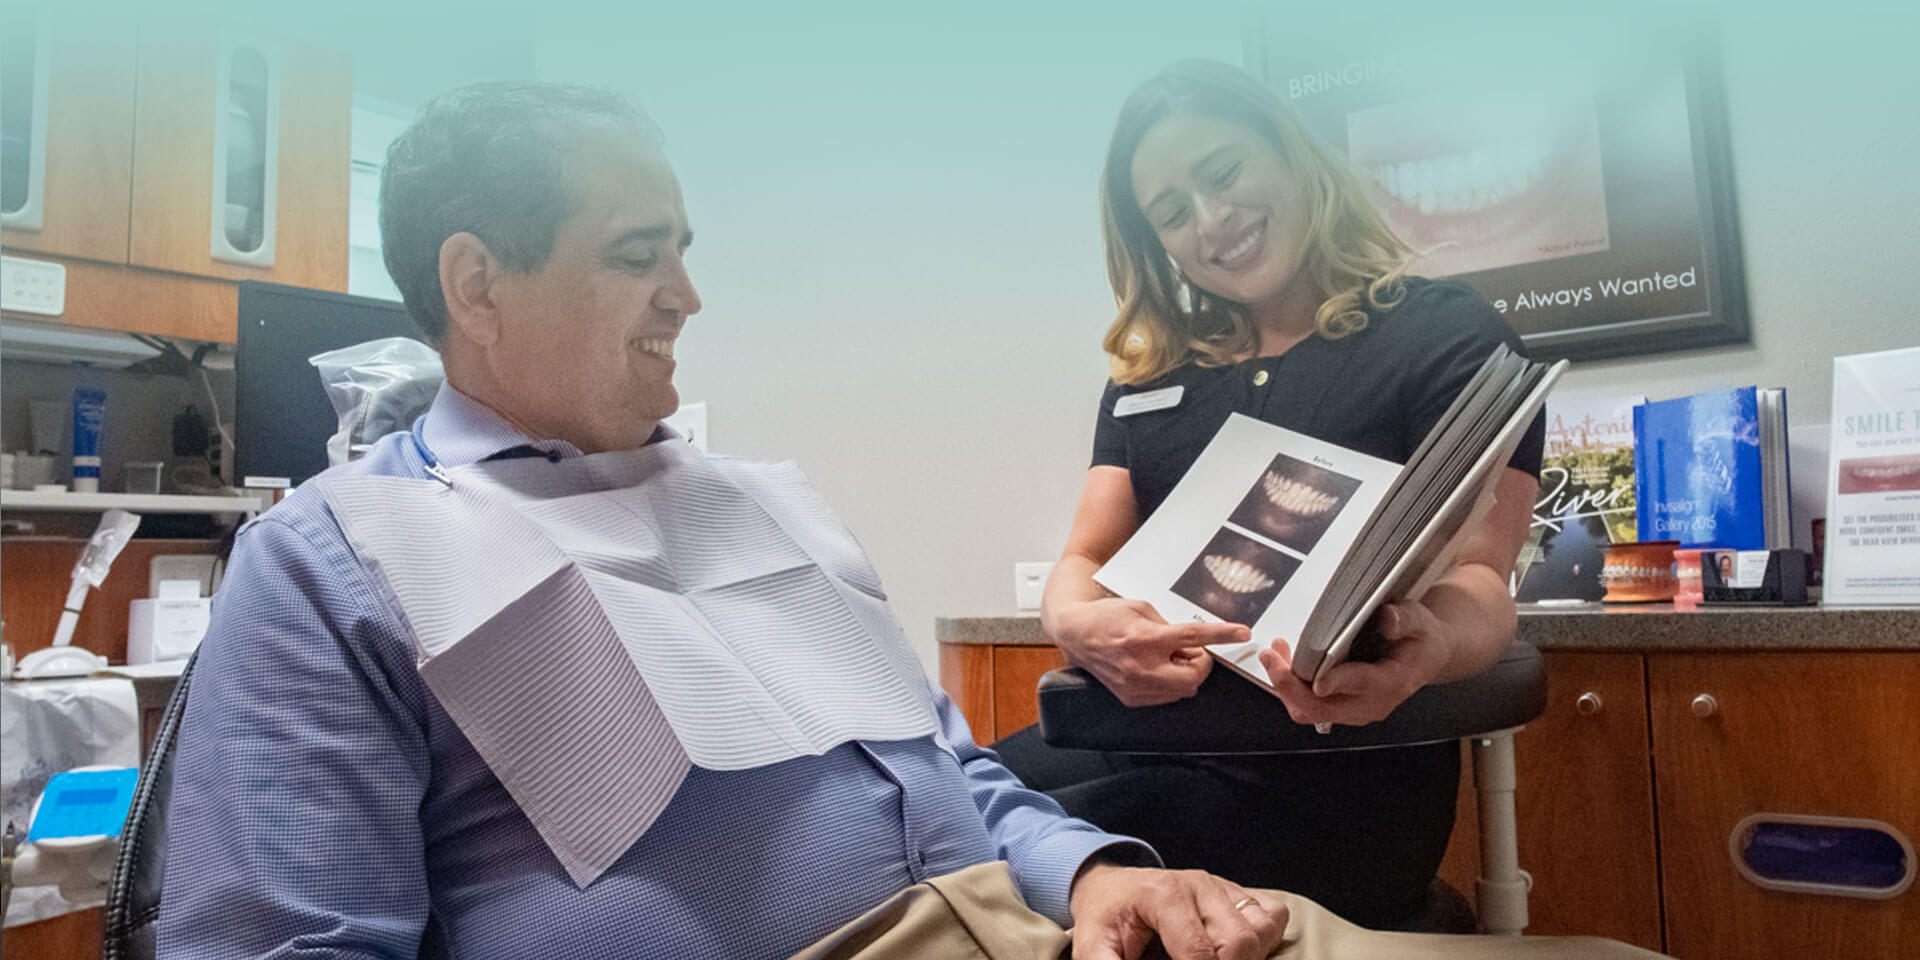 Dental assistant explaining dental process with help of visual images to a patient